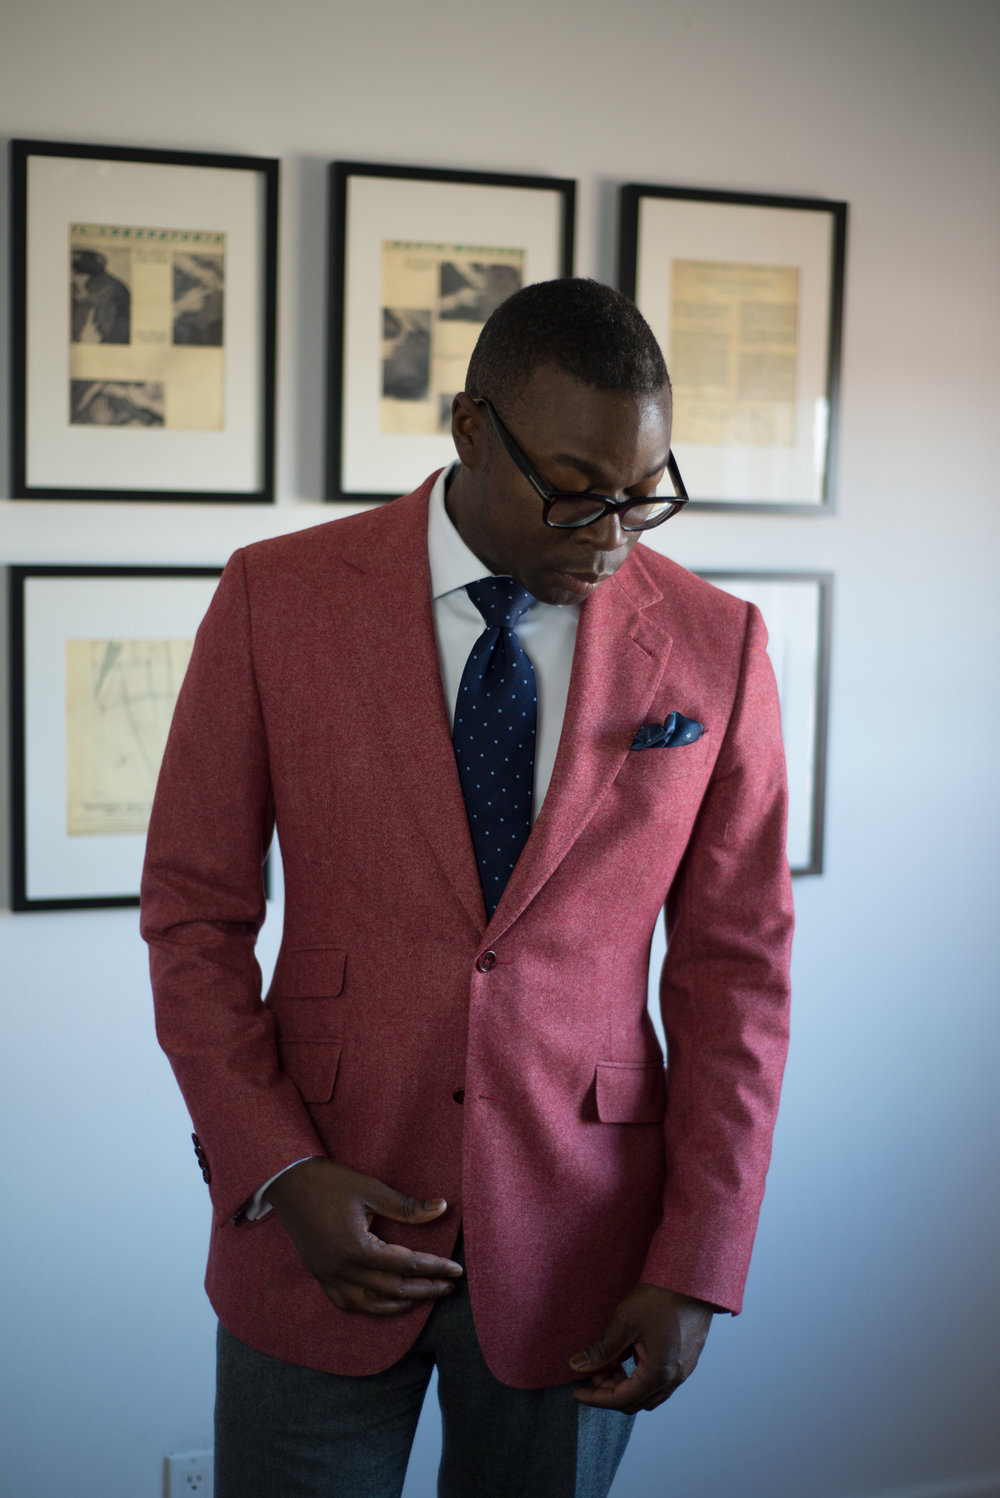 A simple way is to invest in a statement blazer. The key to successfully doing this is to know your go-to colour. For example, Kemar loves red–primary red. However a brilliant primary red jacket may not shout clean, sophisticated or class. So the trick is to find the subdued, softened version of this colour. Choose a cloth with texture, and pair it with colours that can support the statement jacket like a foundation. If the rest of your outfit is simple, then nothing will be in competition visually.